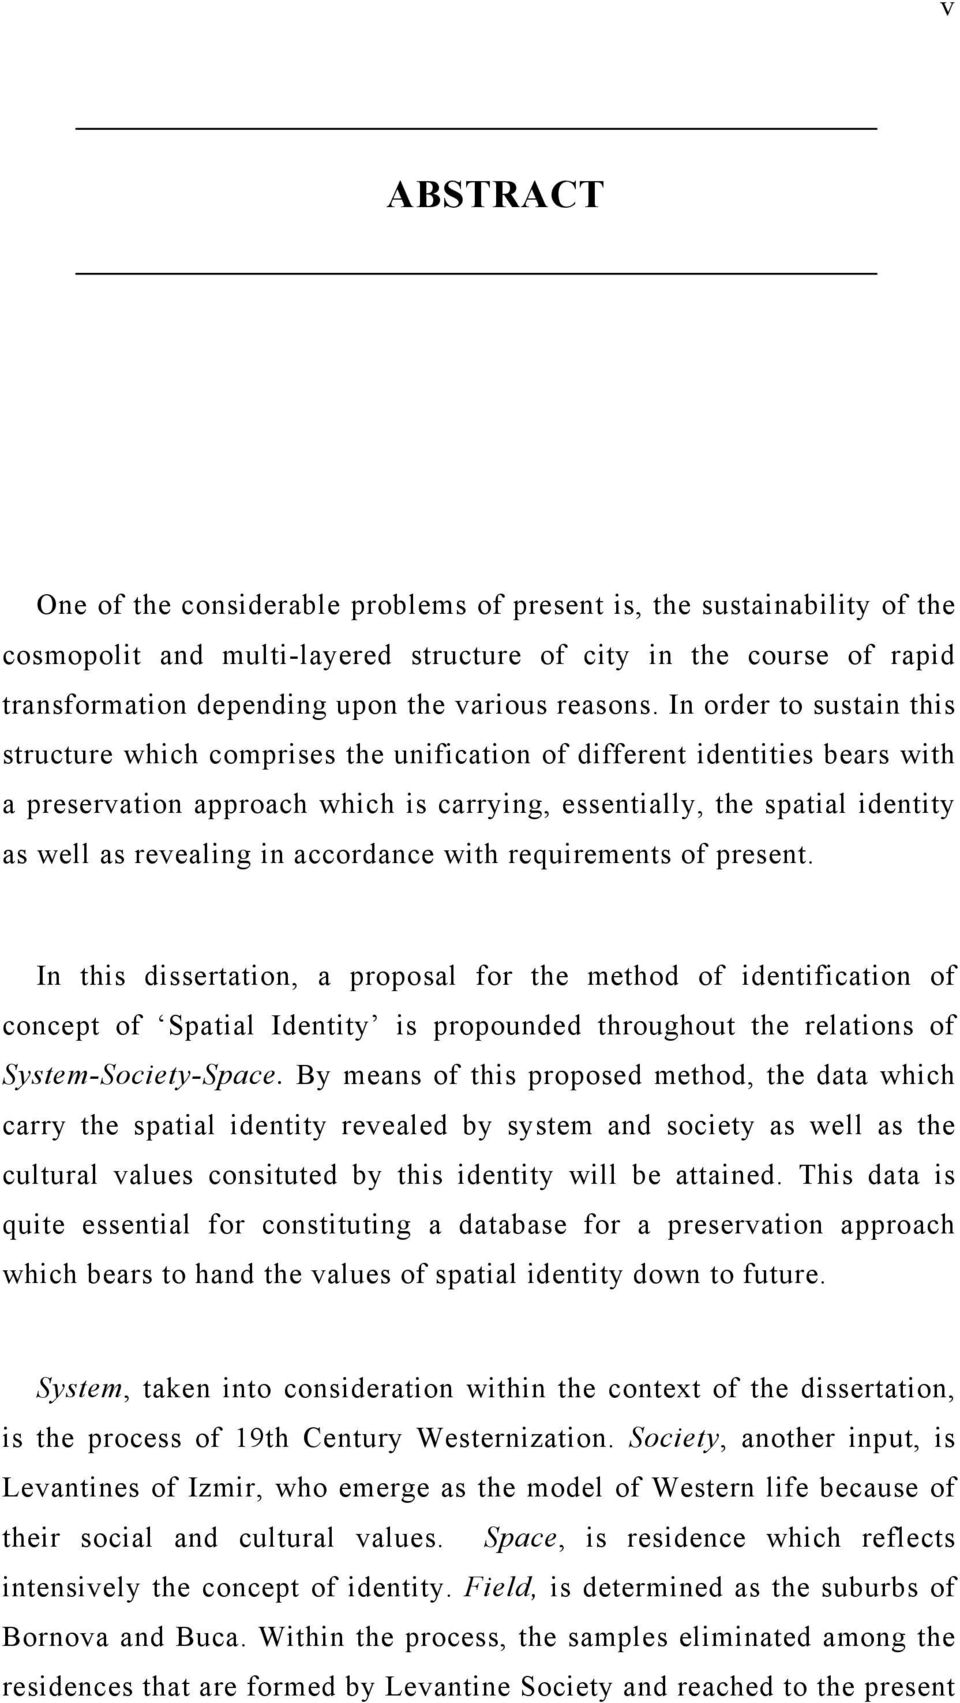 In order to sustain this structure which comprises the unification of different identities bears with a preservation approach which is carrying, essentially, the spatial identity as well as revealing